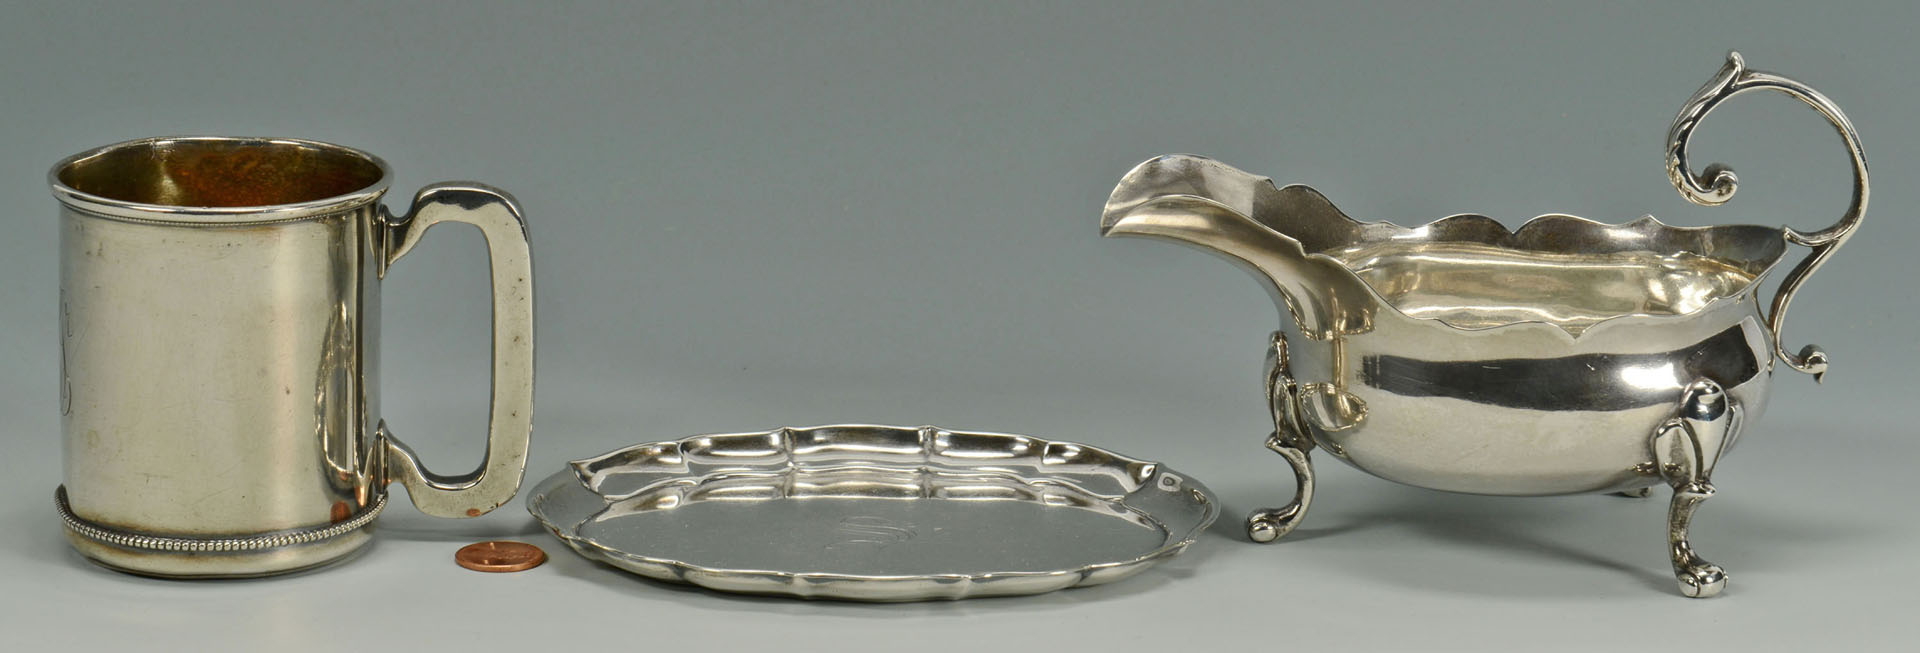 Sterling silver gravy boat, tray and cup